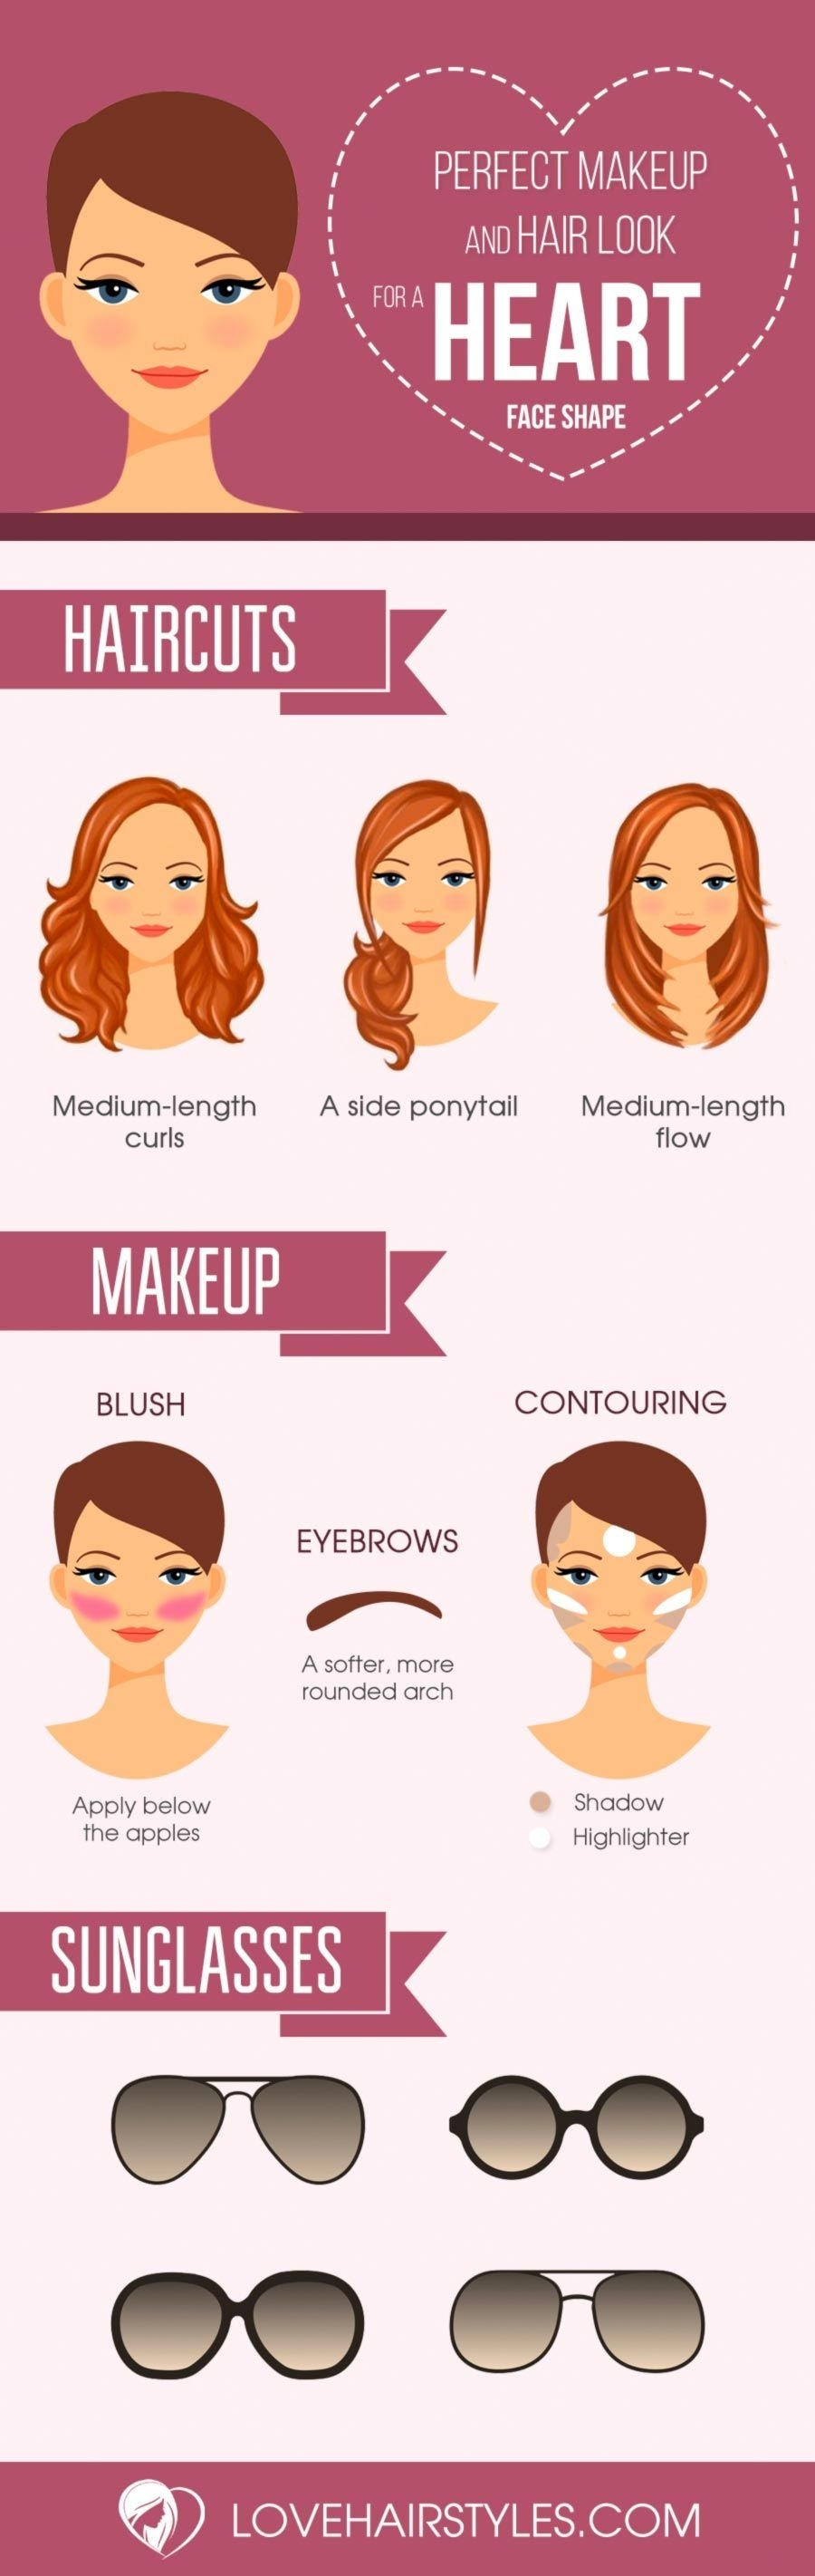 10 Gorgeous Haircuts For Heart Shaped Faces | Makeups | Pinterest in 2018 Haircut For Heart Shaped Face